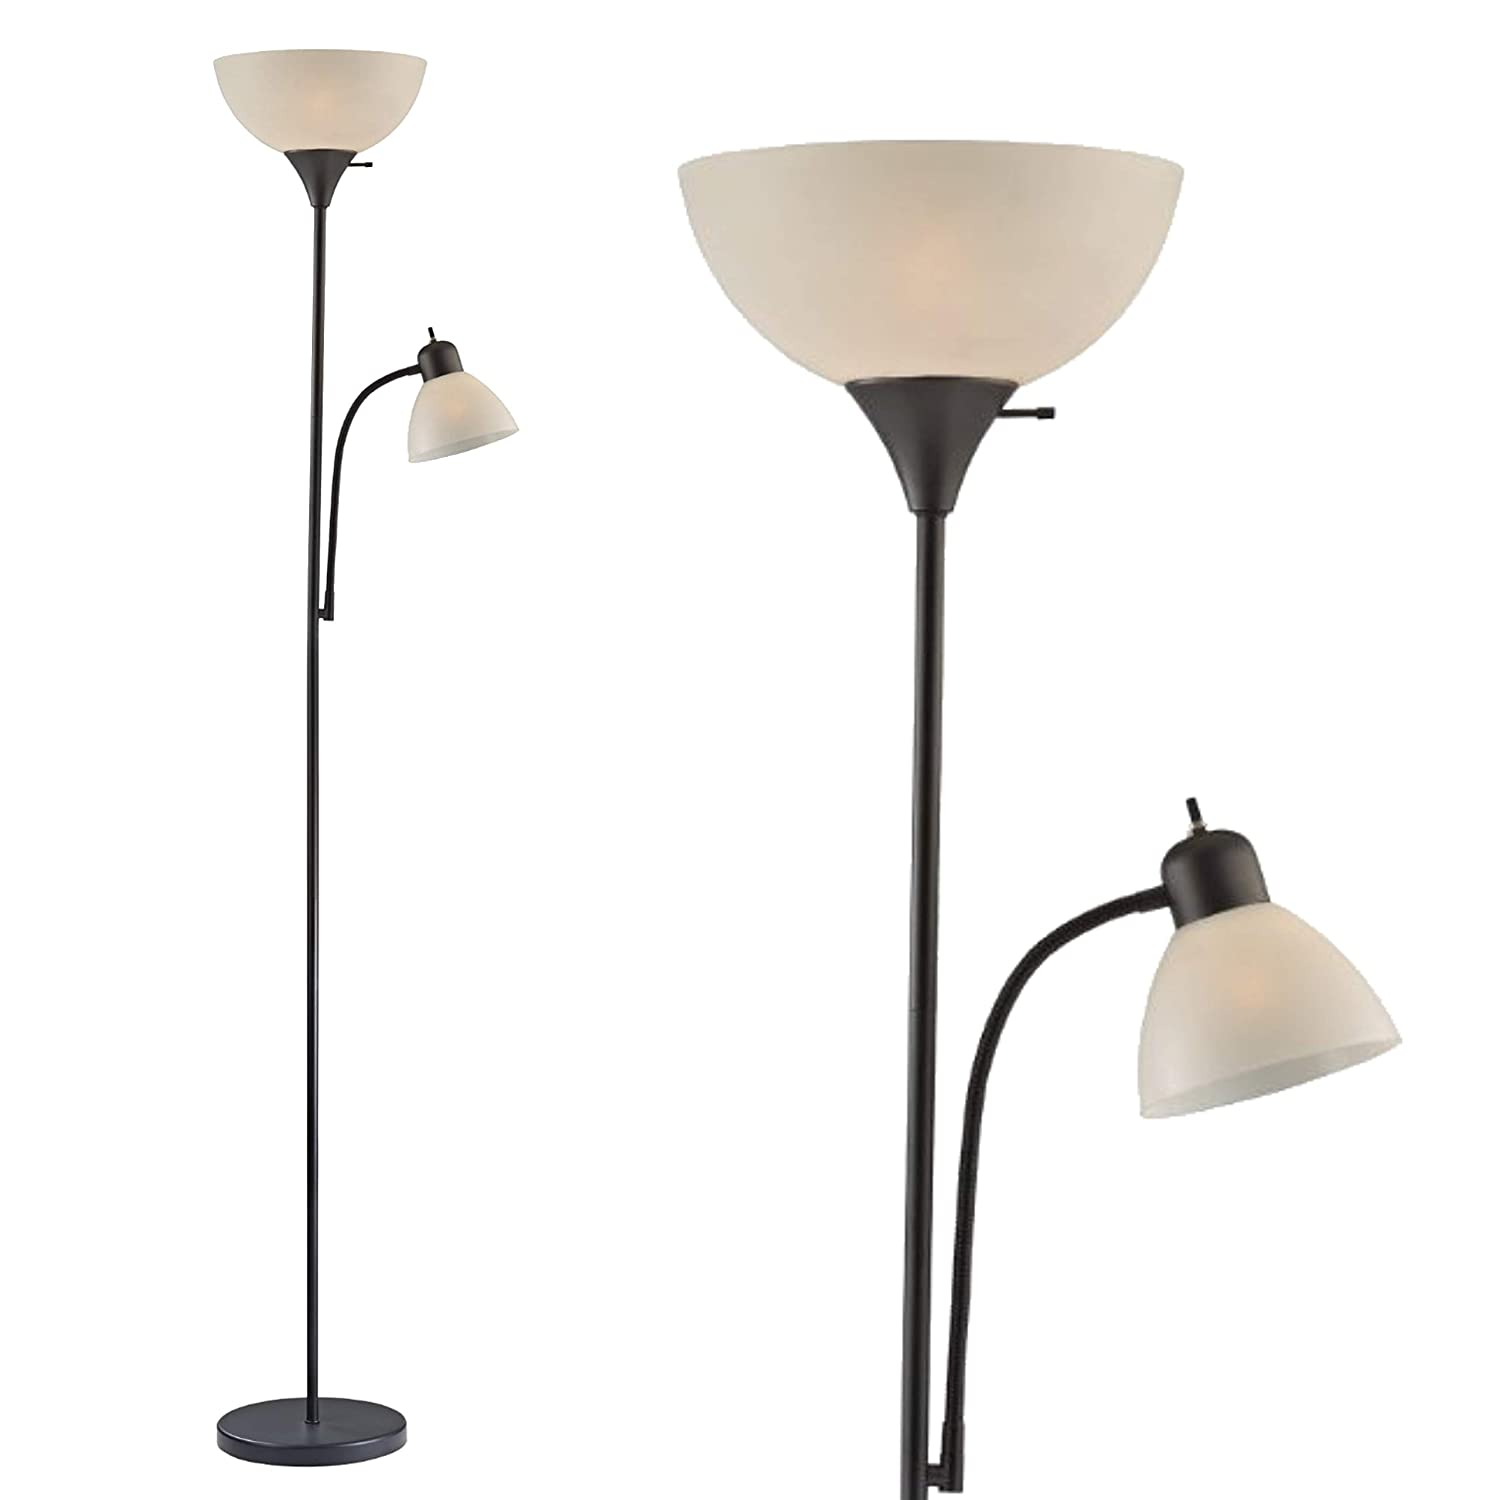 "Light Accents SUSAN Floor Lamp 72"" Tall - 150-Watt with Side Reading Light (Black)"